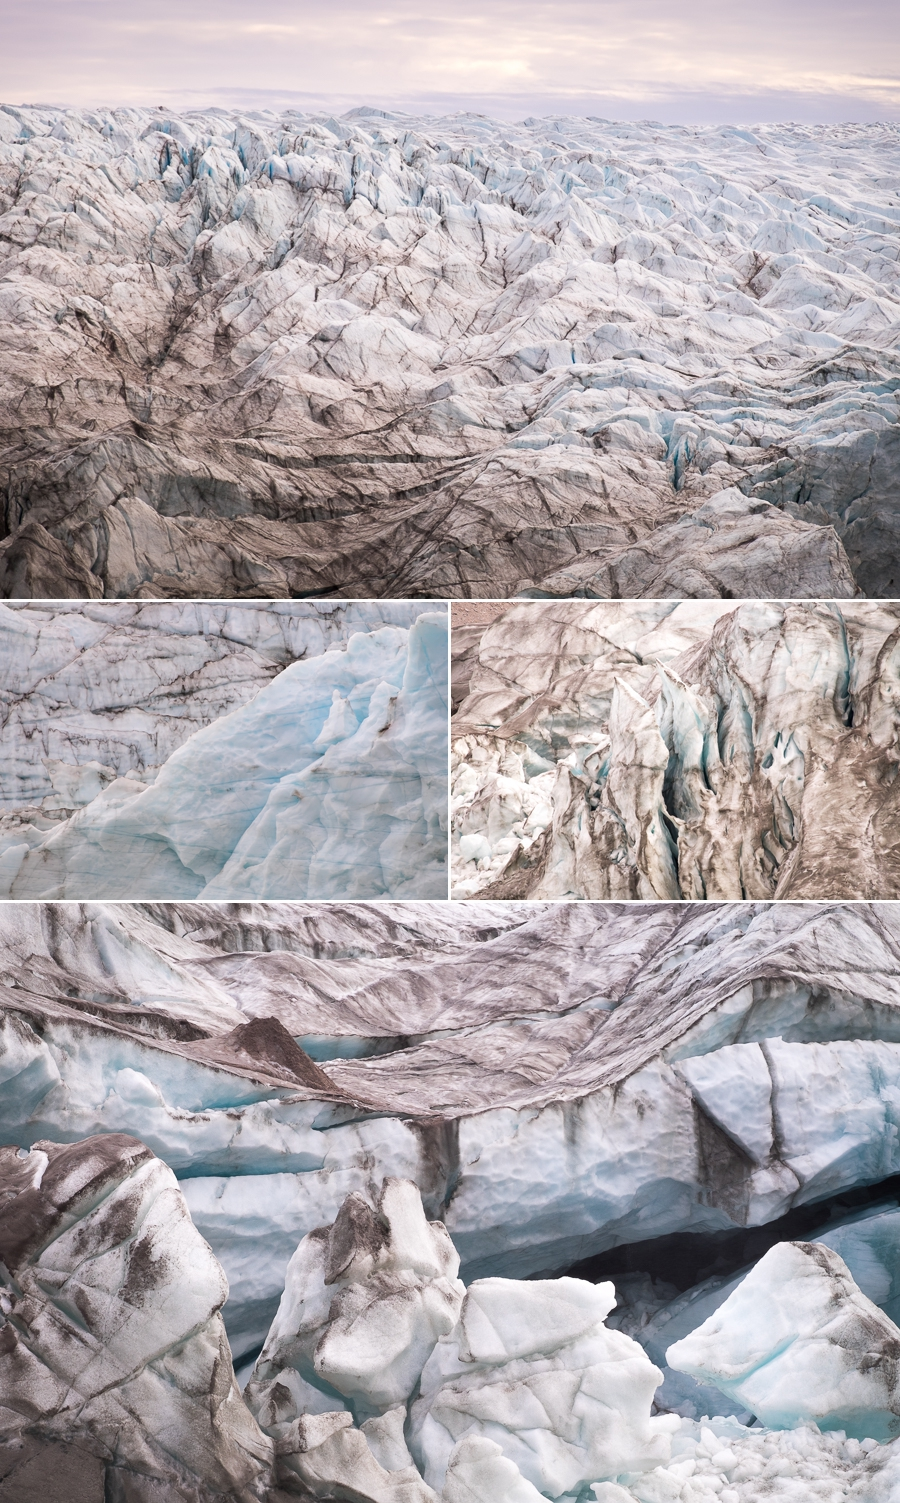 different views of the ice making up the Russell Glacier near Kangerlussuaq in West Greenland